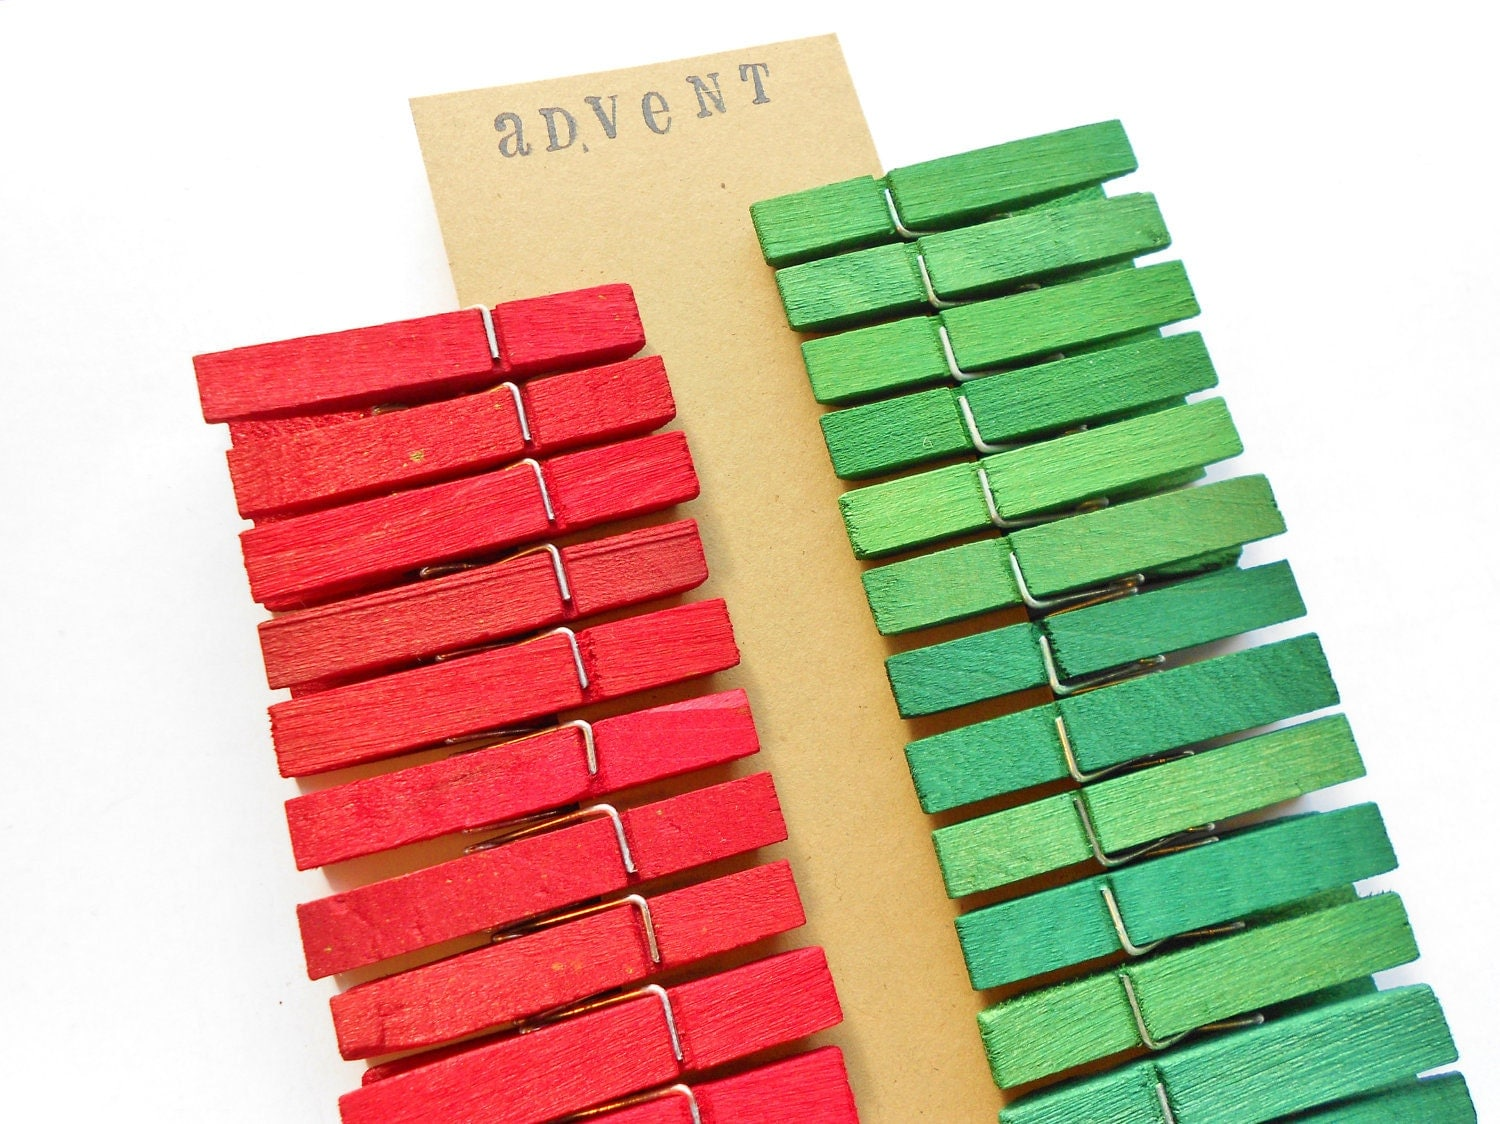 Advent Calendar Clothespins - Christmas Themed - Red / Green - 25 Medium - Free Shipping